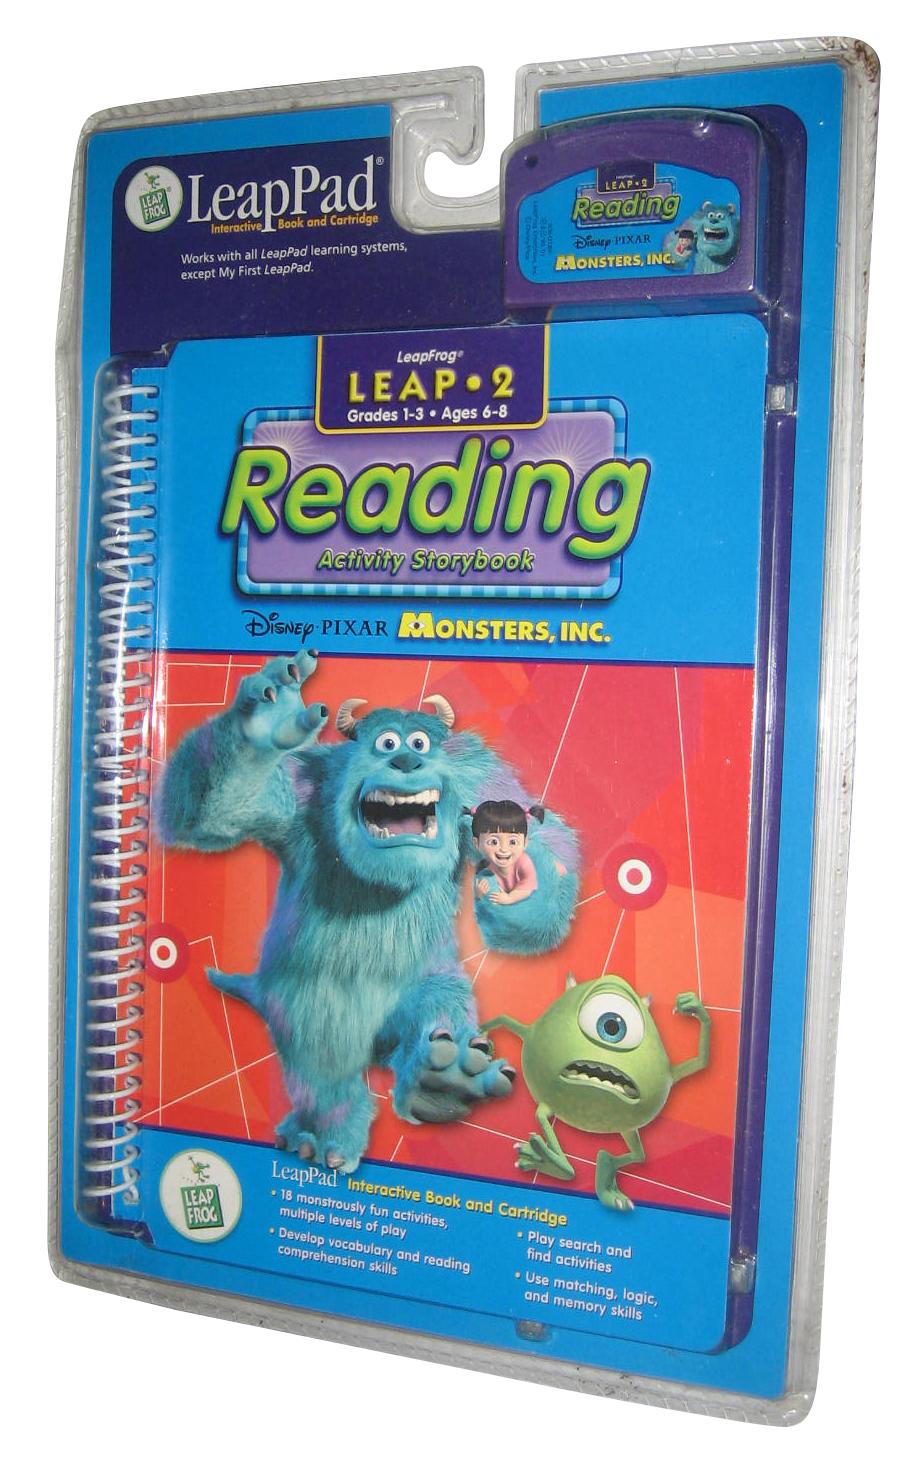 Details Sur Disney Pixar Monsters Inc Leappad 2 Lecture Interactif Leap Grenouille Livre